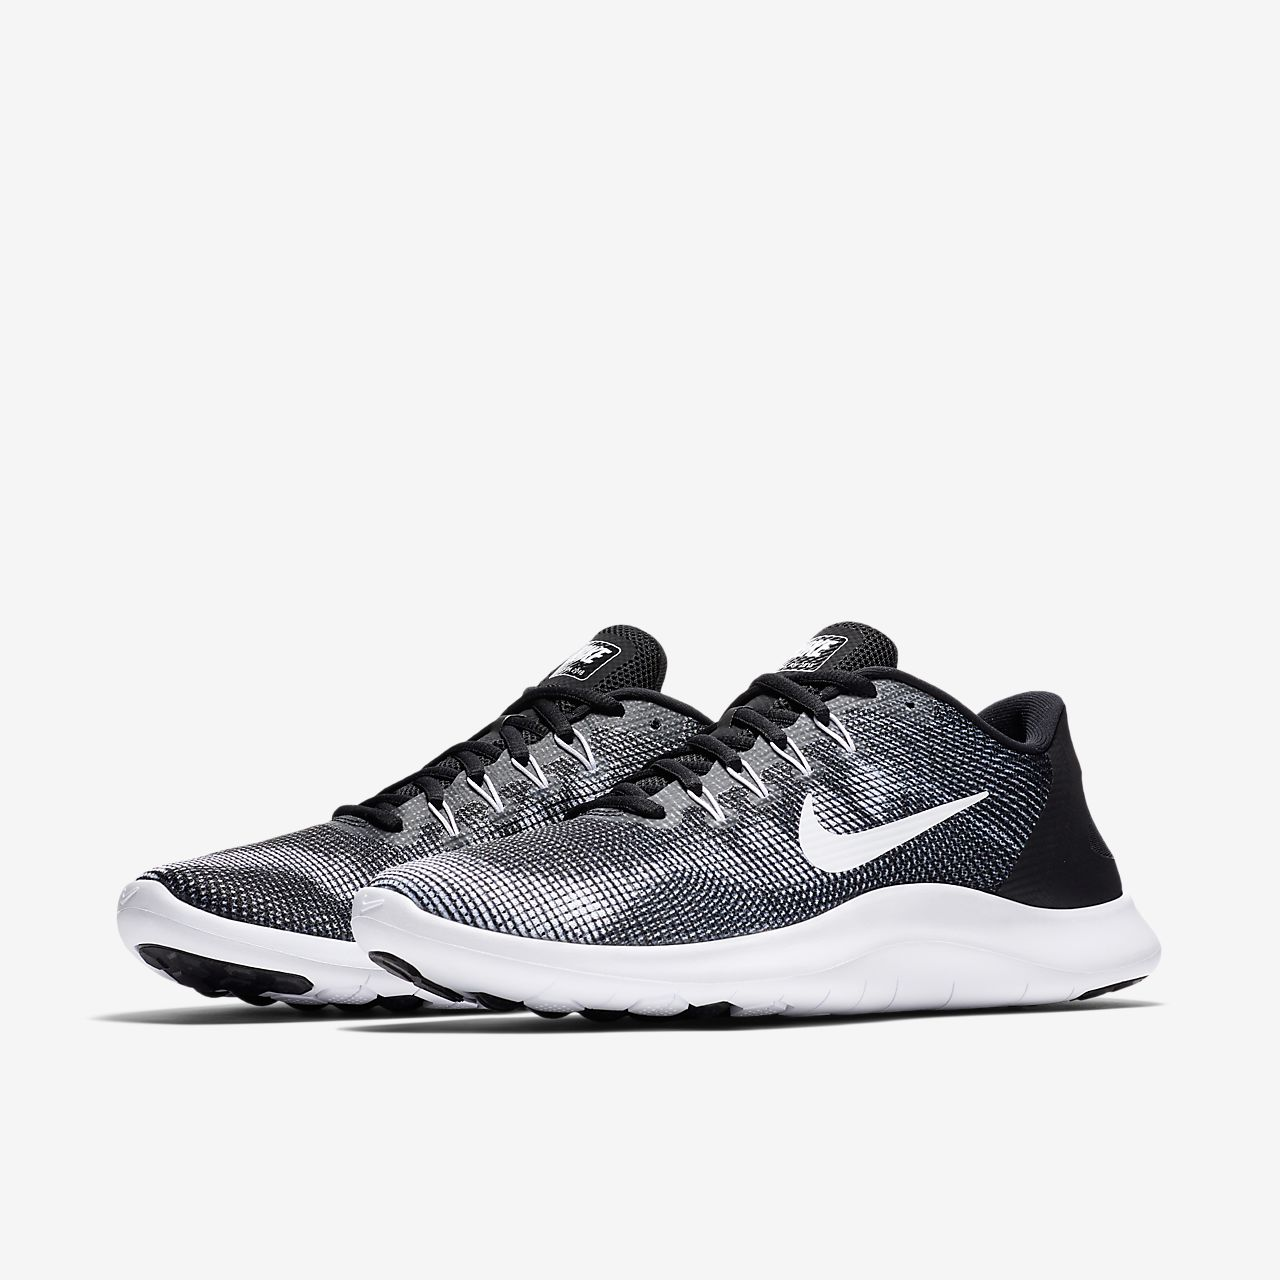 cheap sale perfect NIKE Men's Flex 2018 RN Running Shoes cheap sale affordable cheap 2014 newest 9v4fg